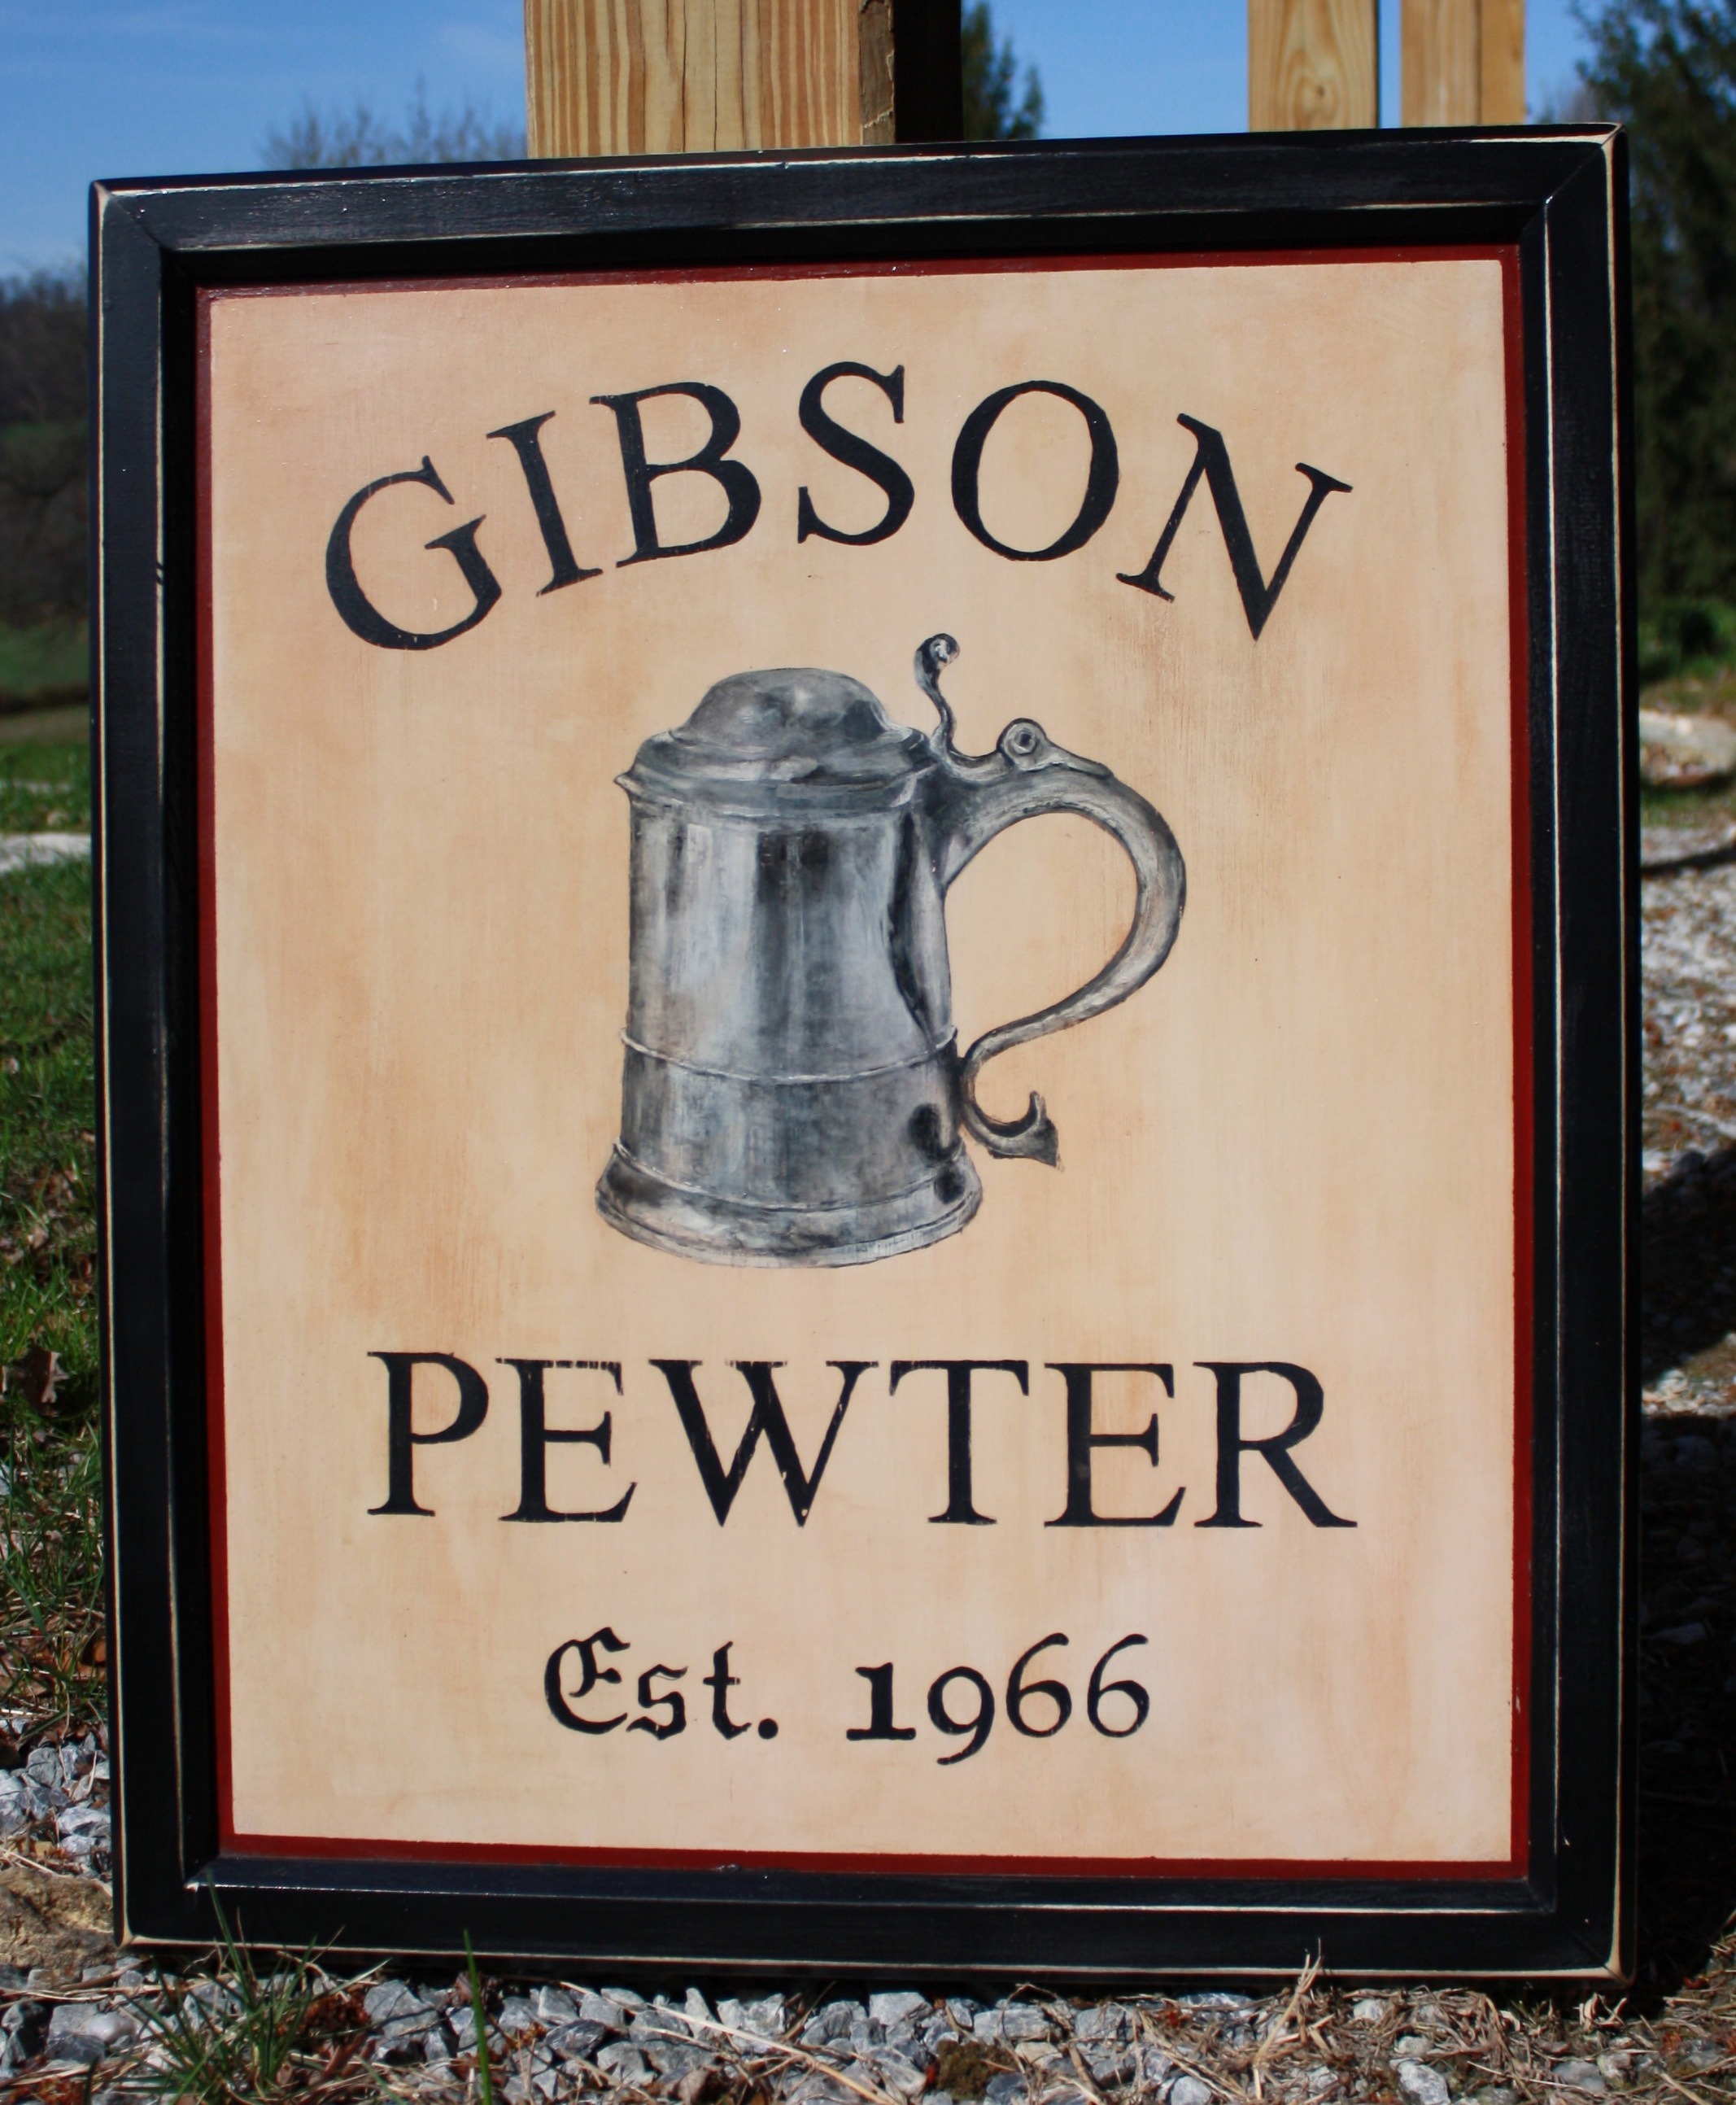 custom_colonial american sign company_gibson pewter3.jpg